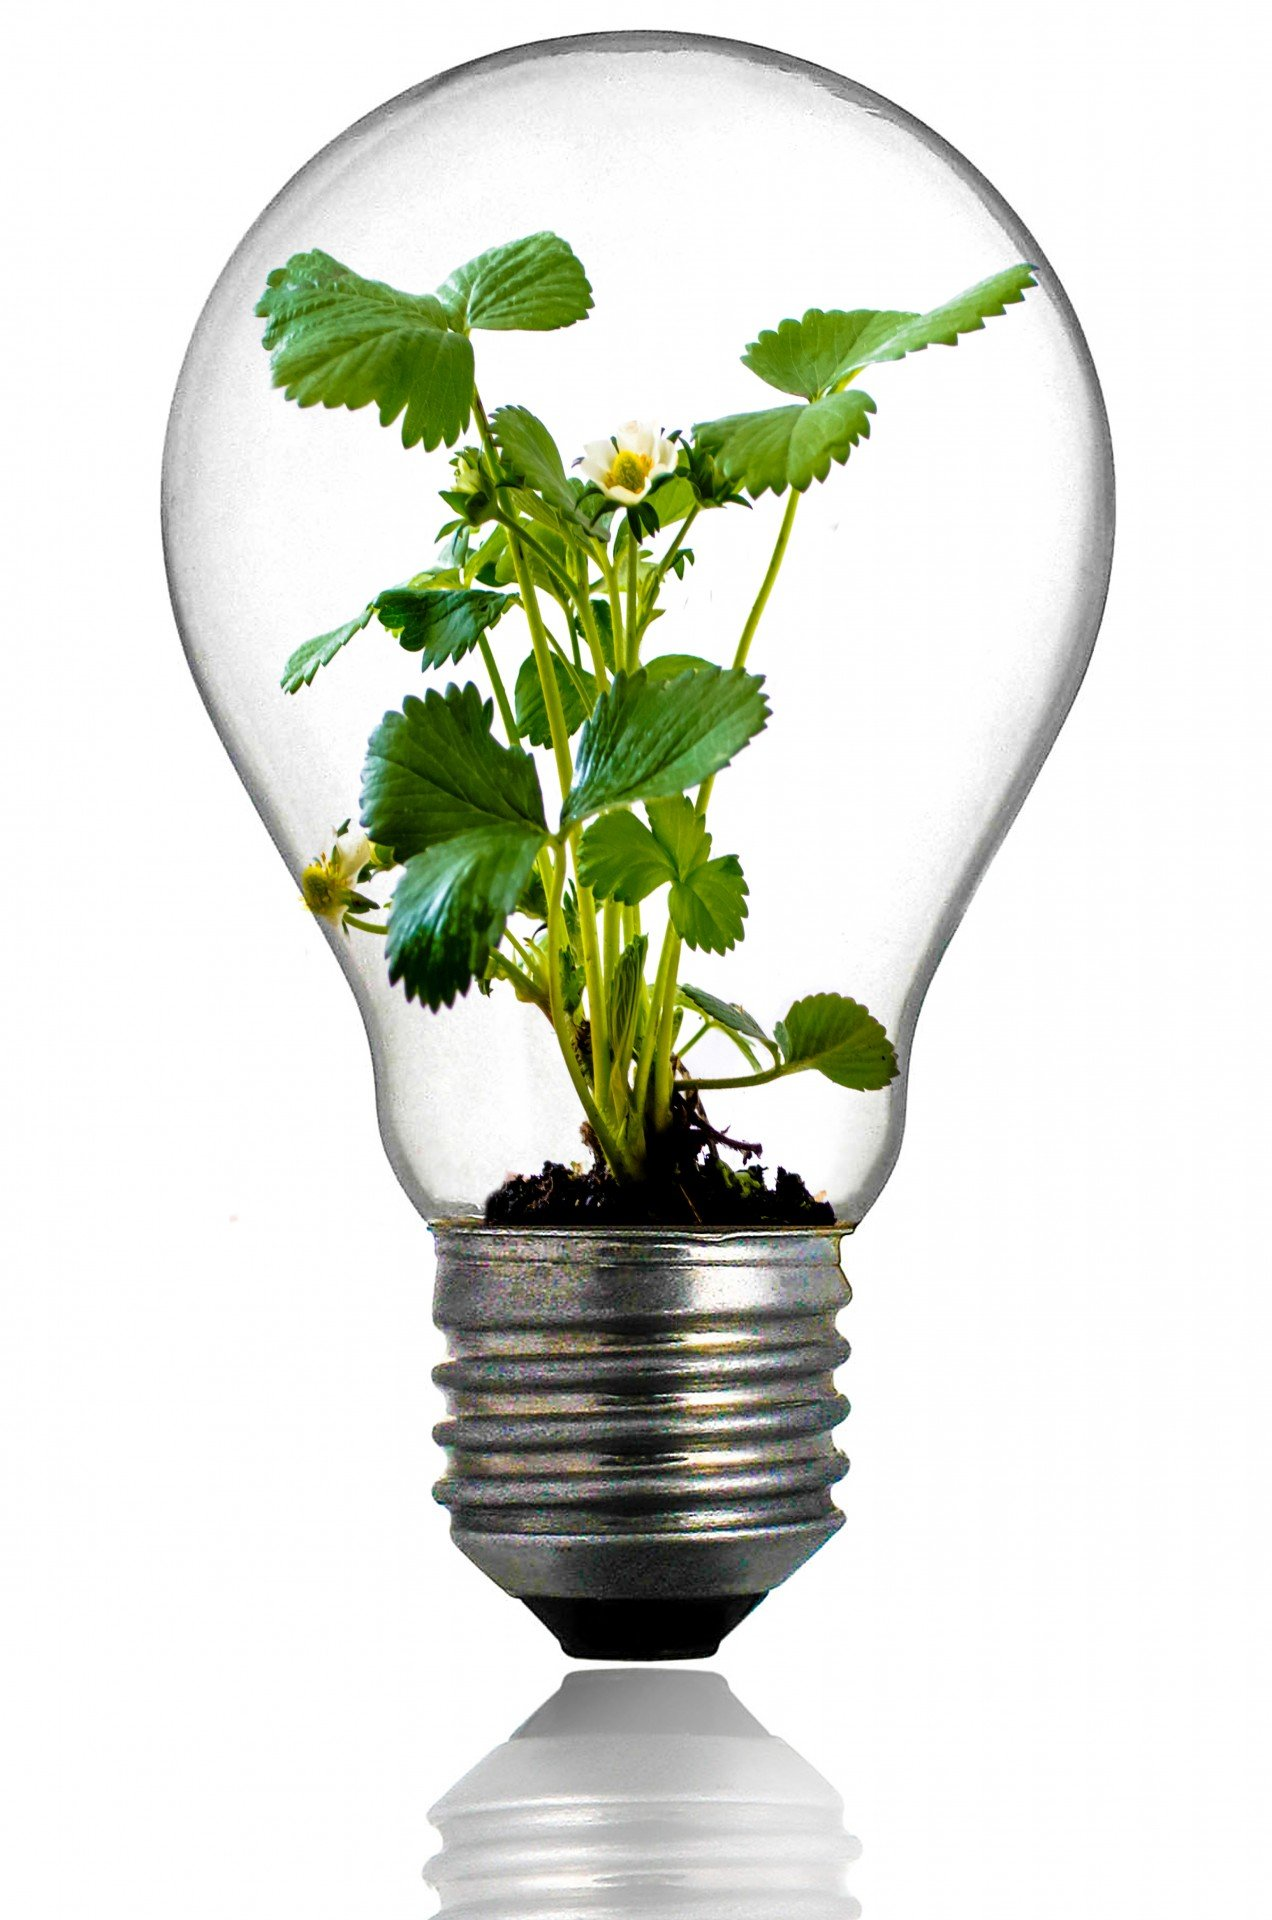 green plant in the light bulb